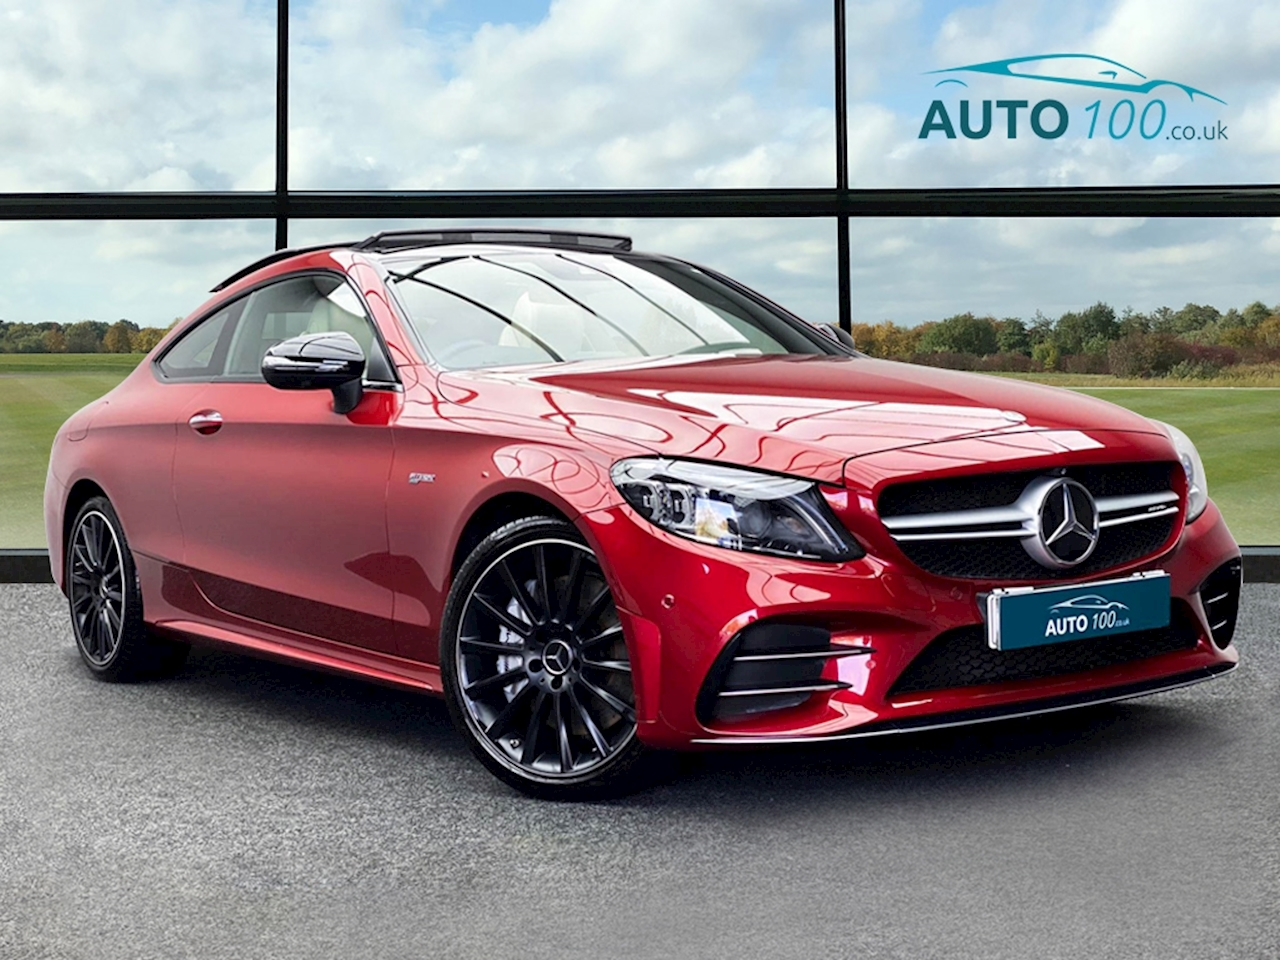 Mercedes-Benz C Class AMG Coupe 3.0 G-Tronic+ Petrol